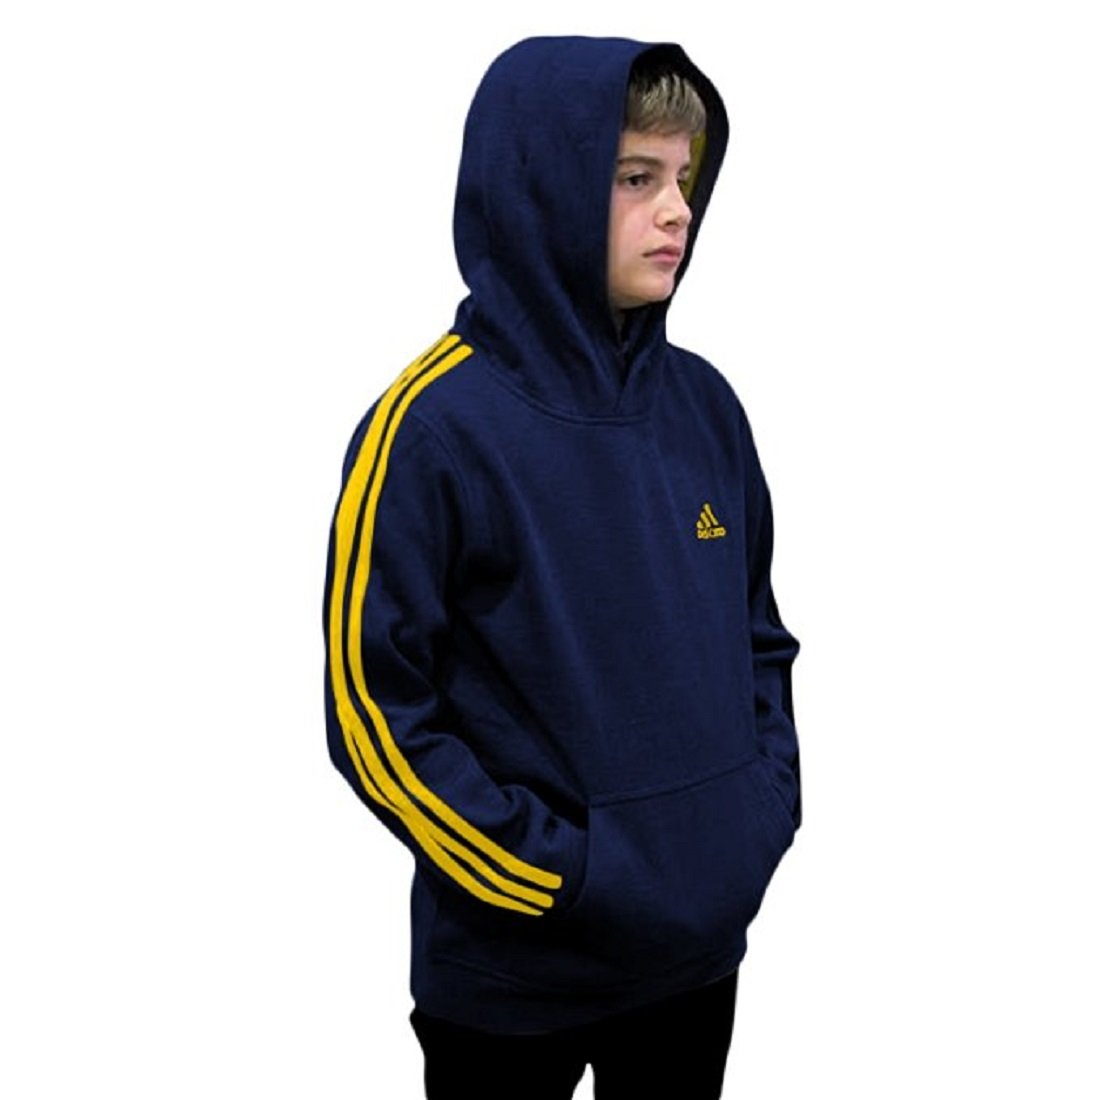 Outerstuff adidas Youth Fleece Collection (Youth Medium 10/12, Fleece Pullover Hoodie, Navy/Yellow) by Outerstuff